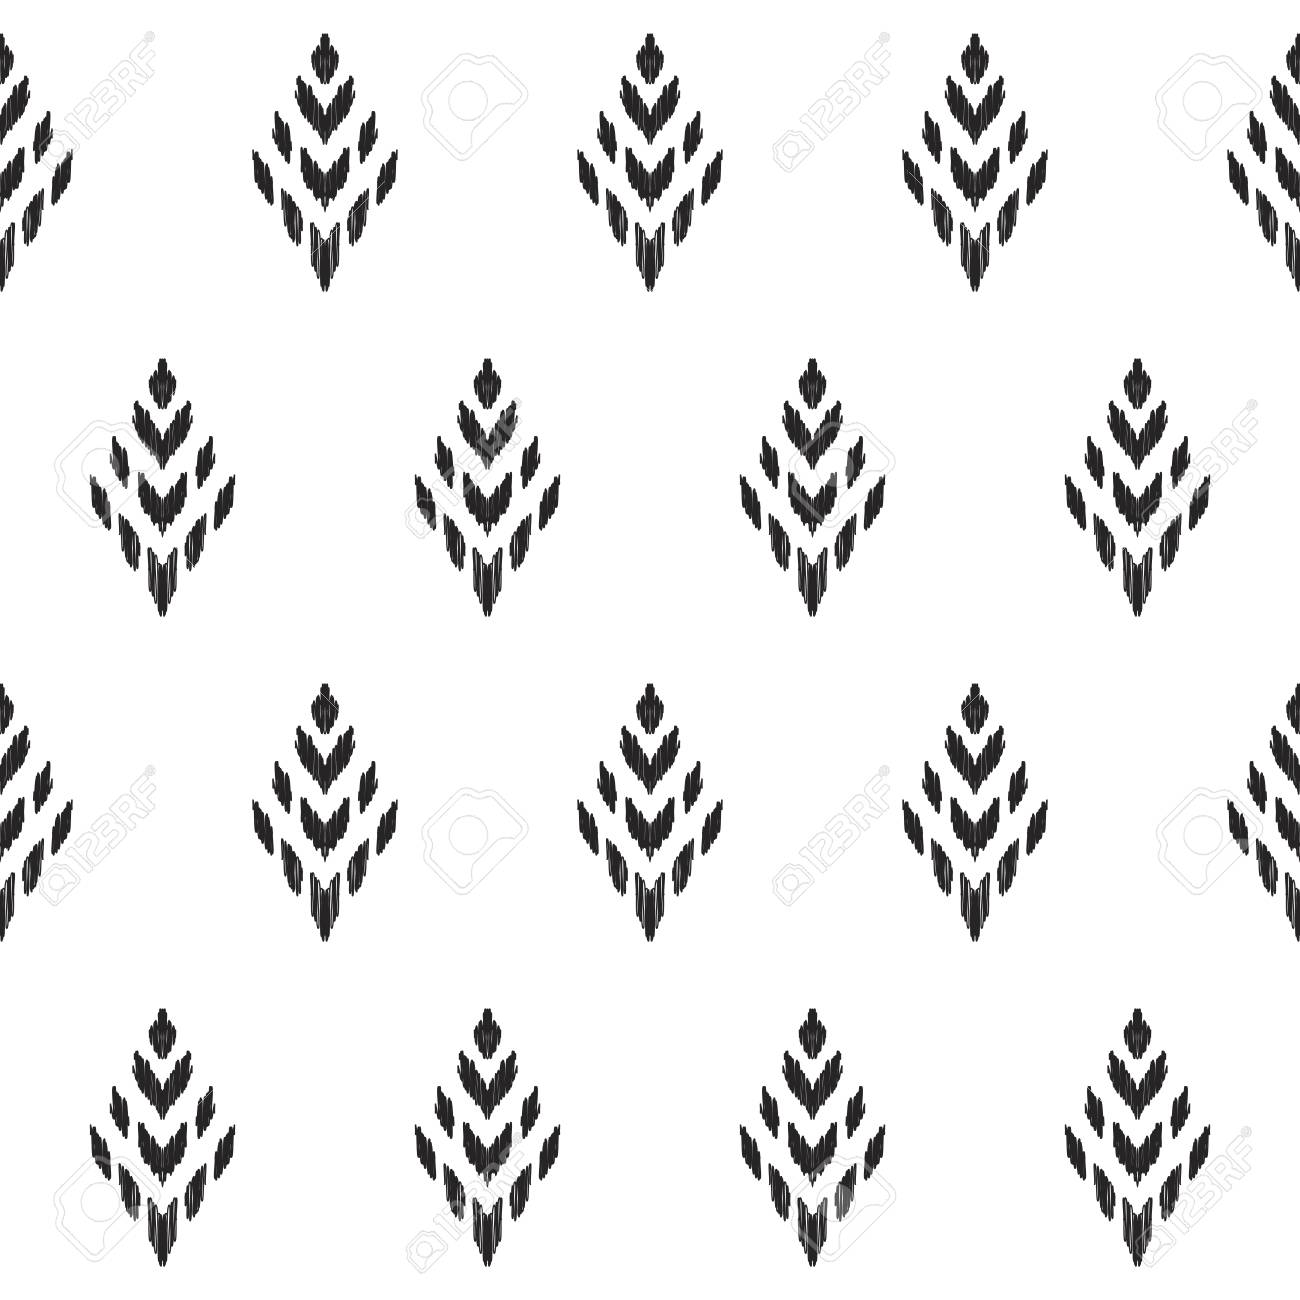 Awe Inspiring Ethnic Seamless Pattern For Modern Home Decor Fabric Cover Interior Design Ideas Inamawefileorg